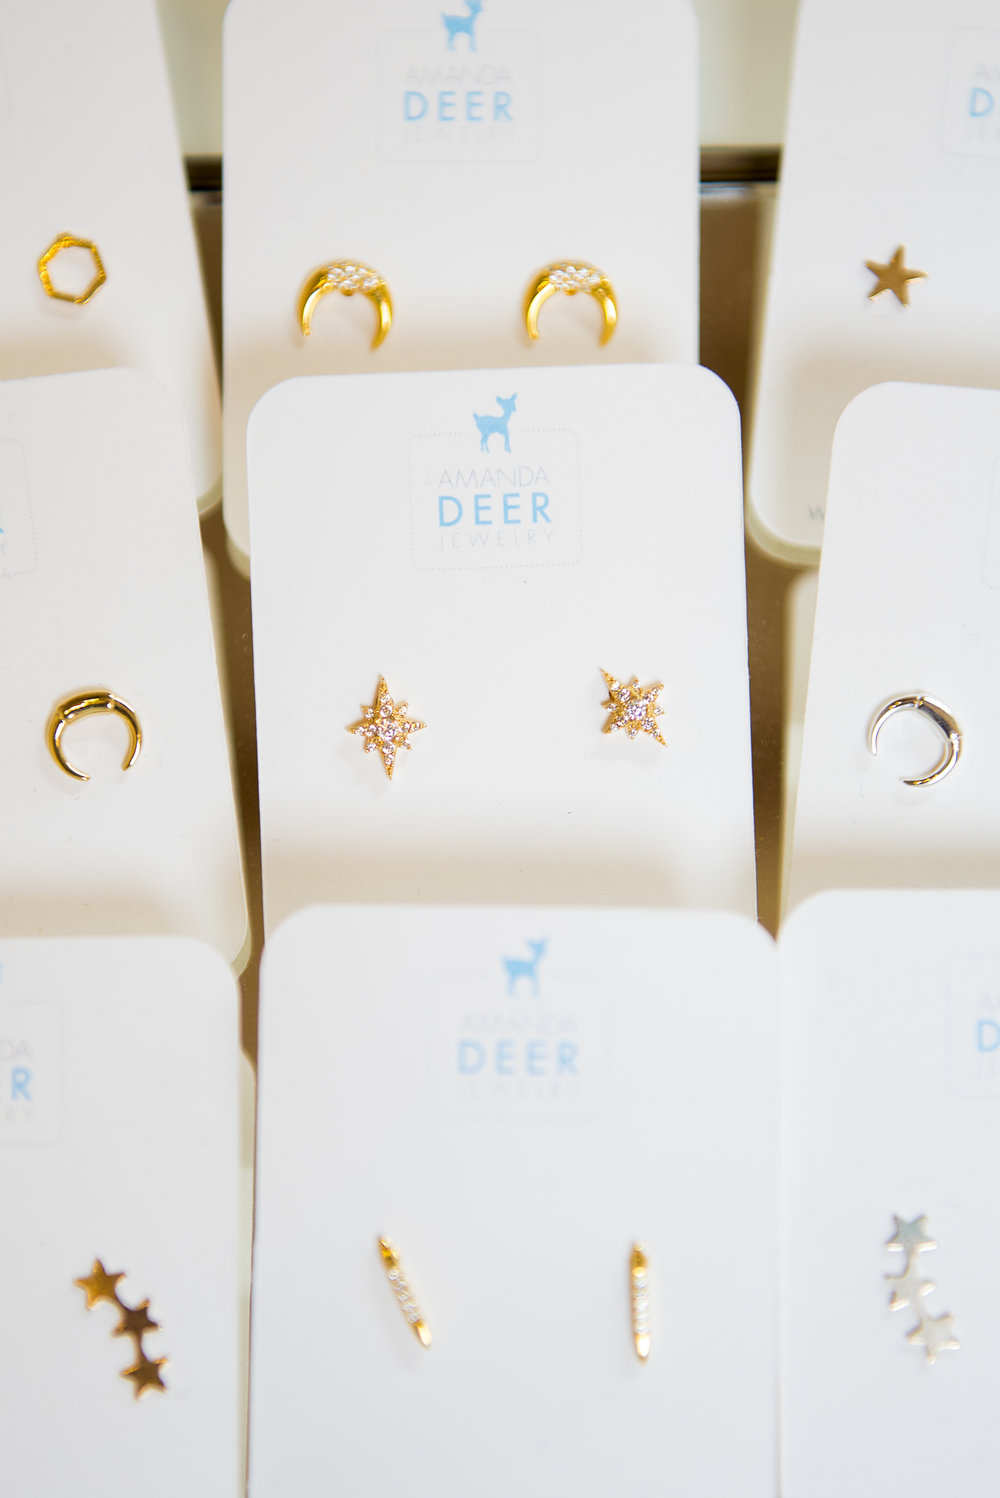 Delicate Amanda Deer earrings